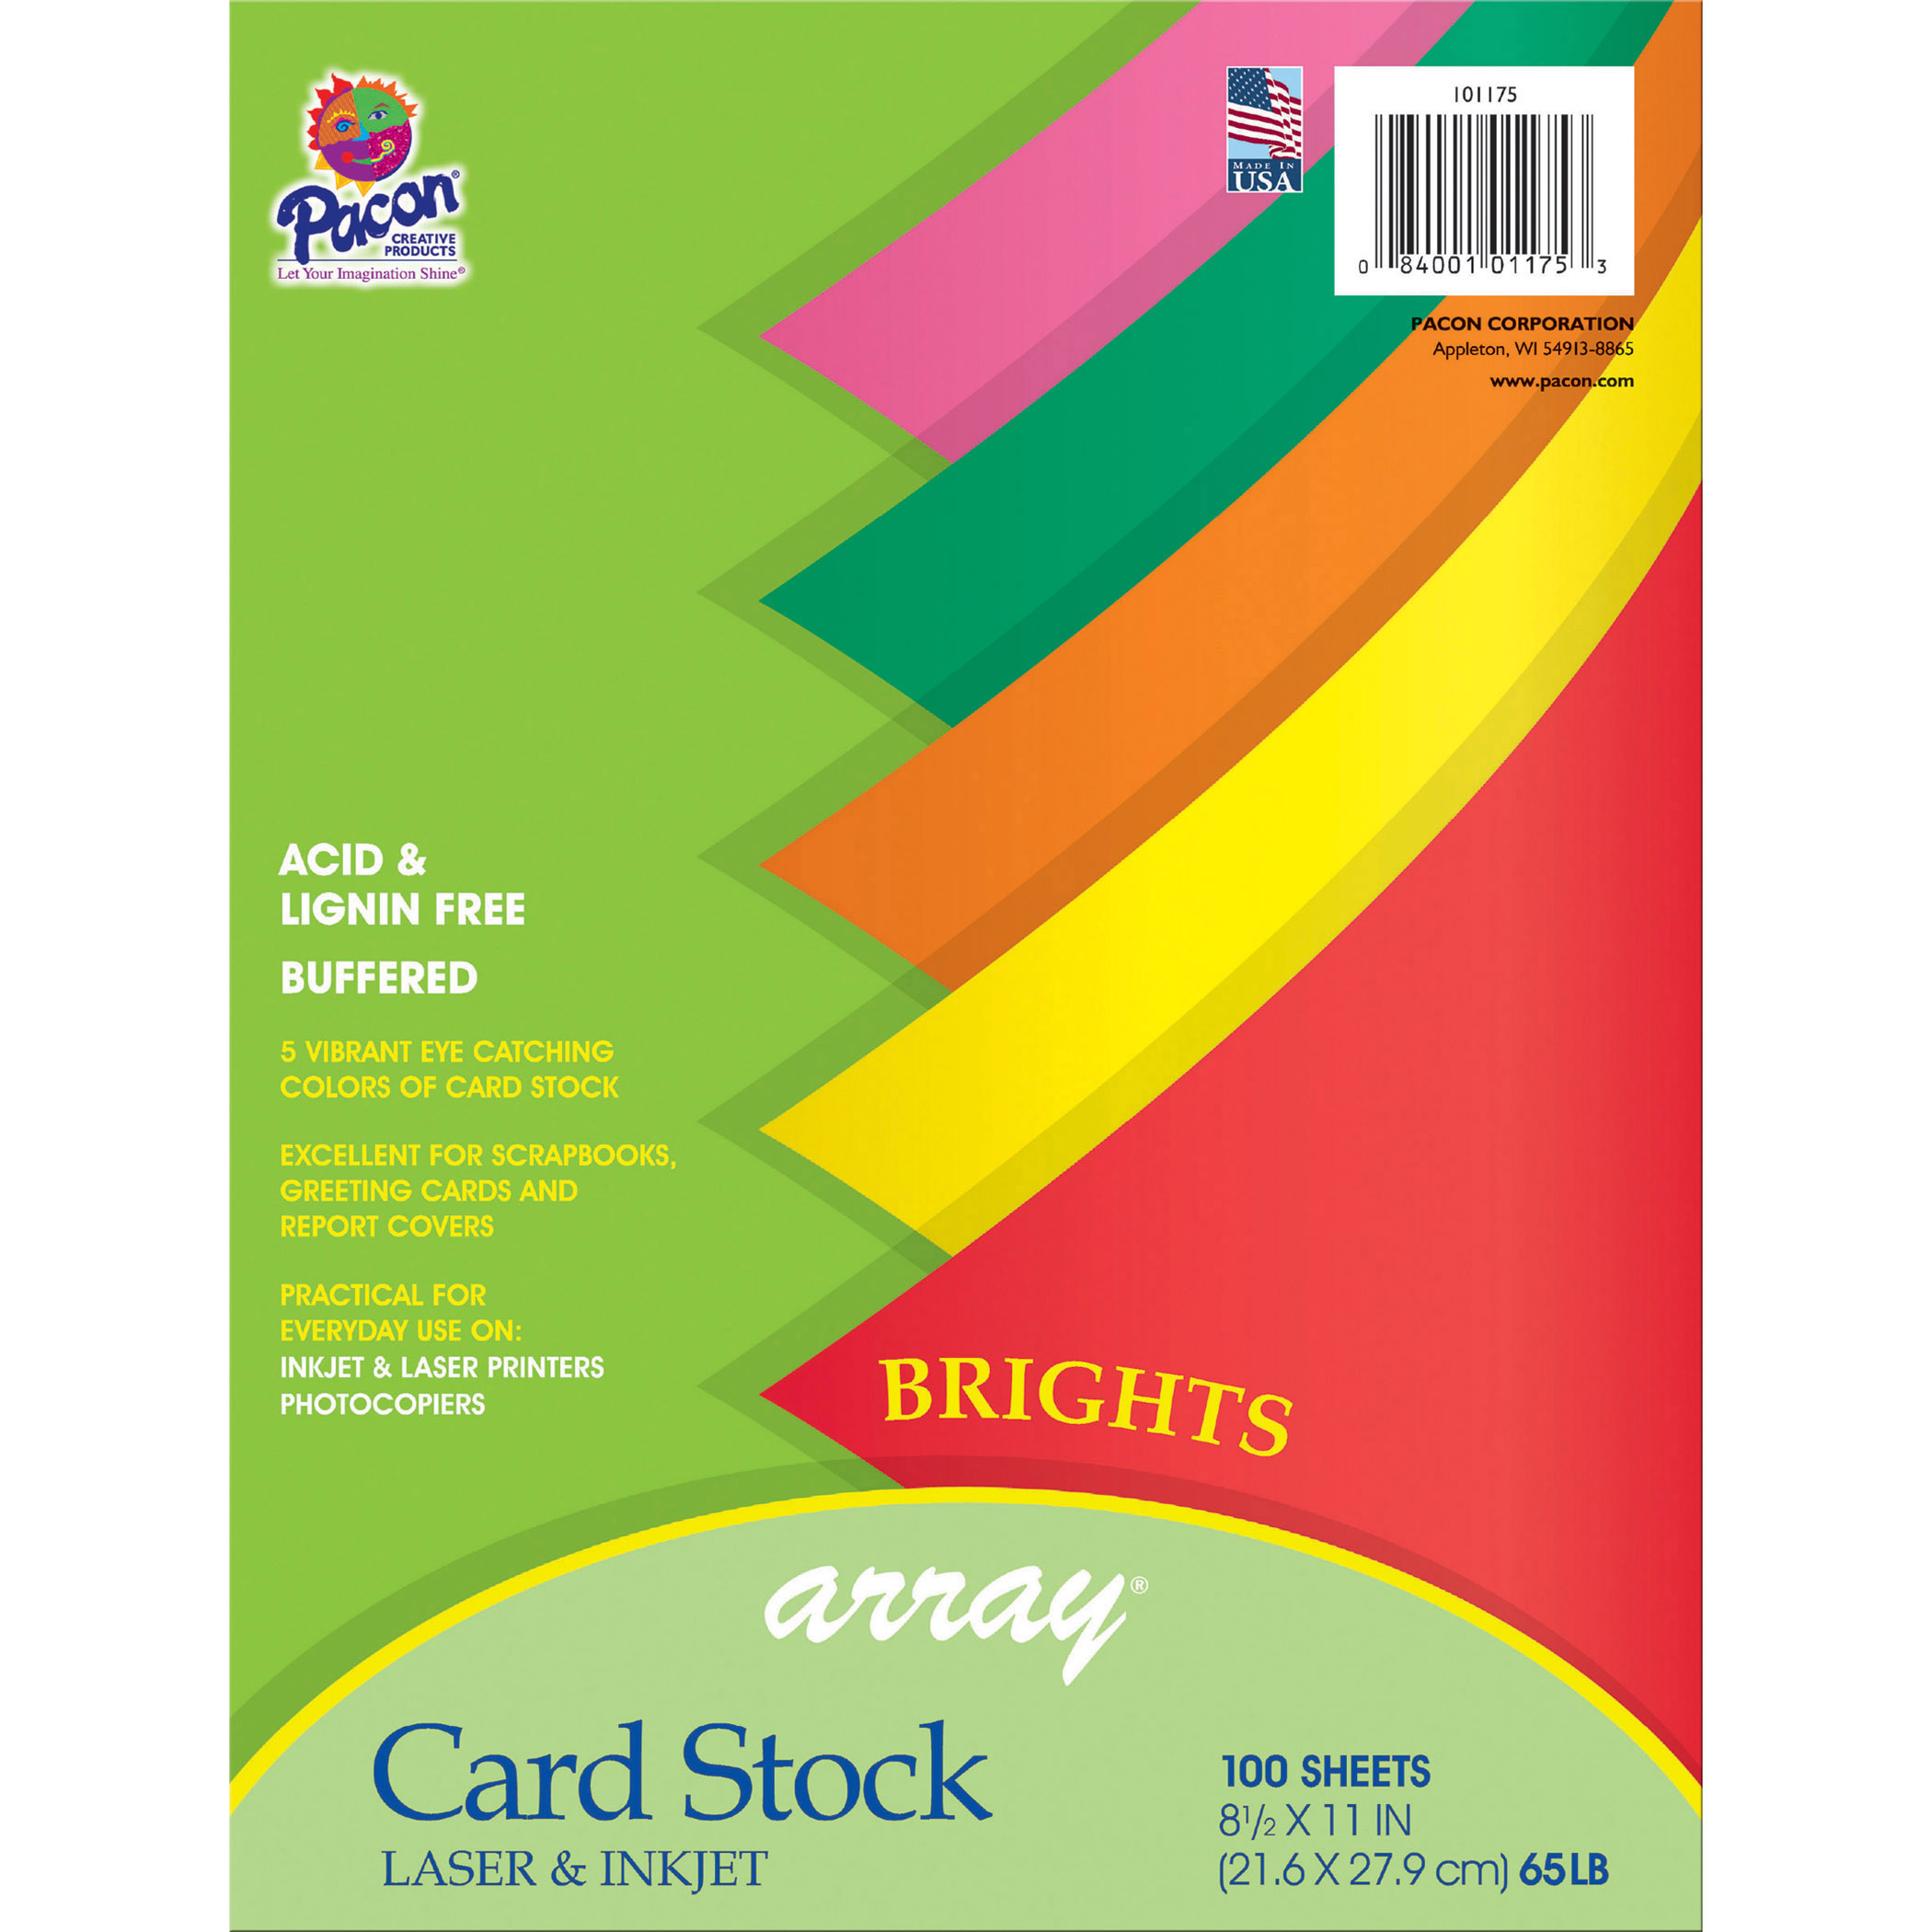 Array® Card Stock, Bright Colors, 100 Sheets